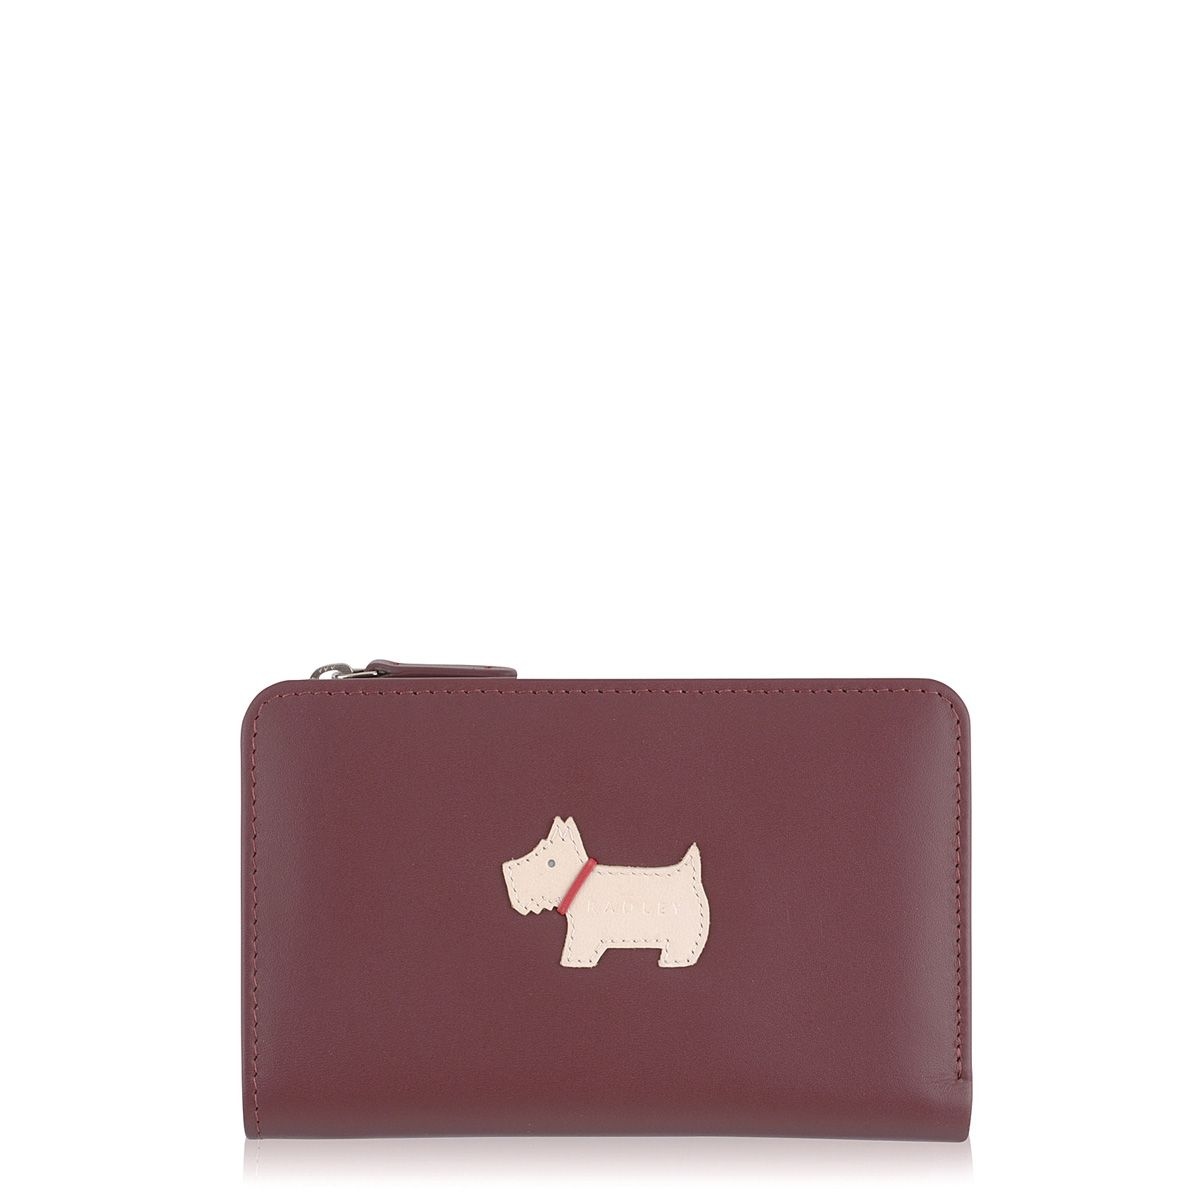 Radley Heritage dog medium zip purse Burgundy